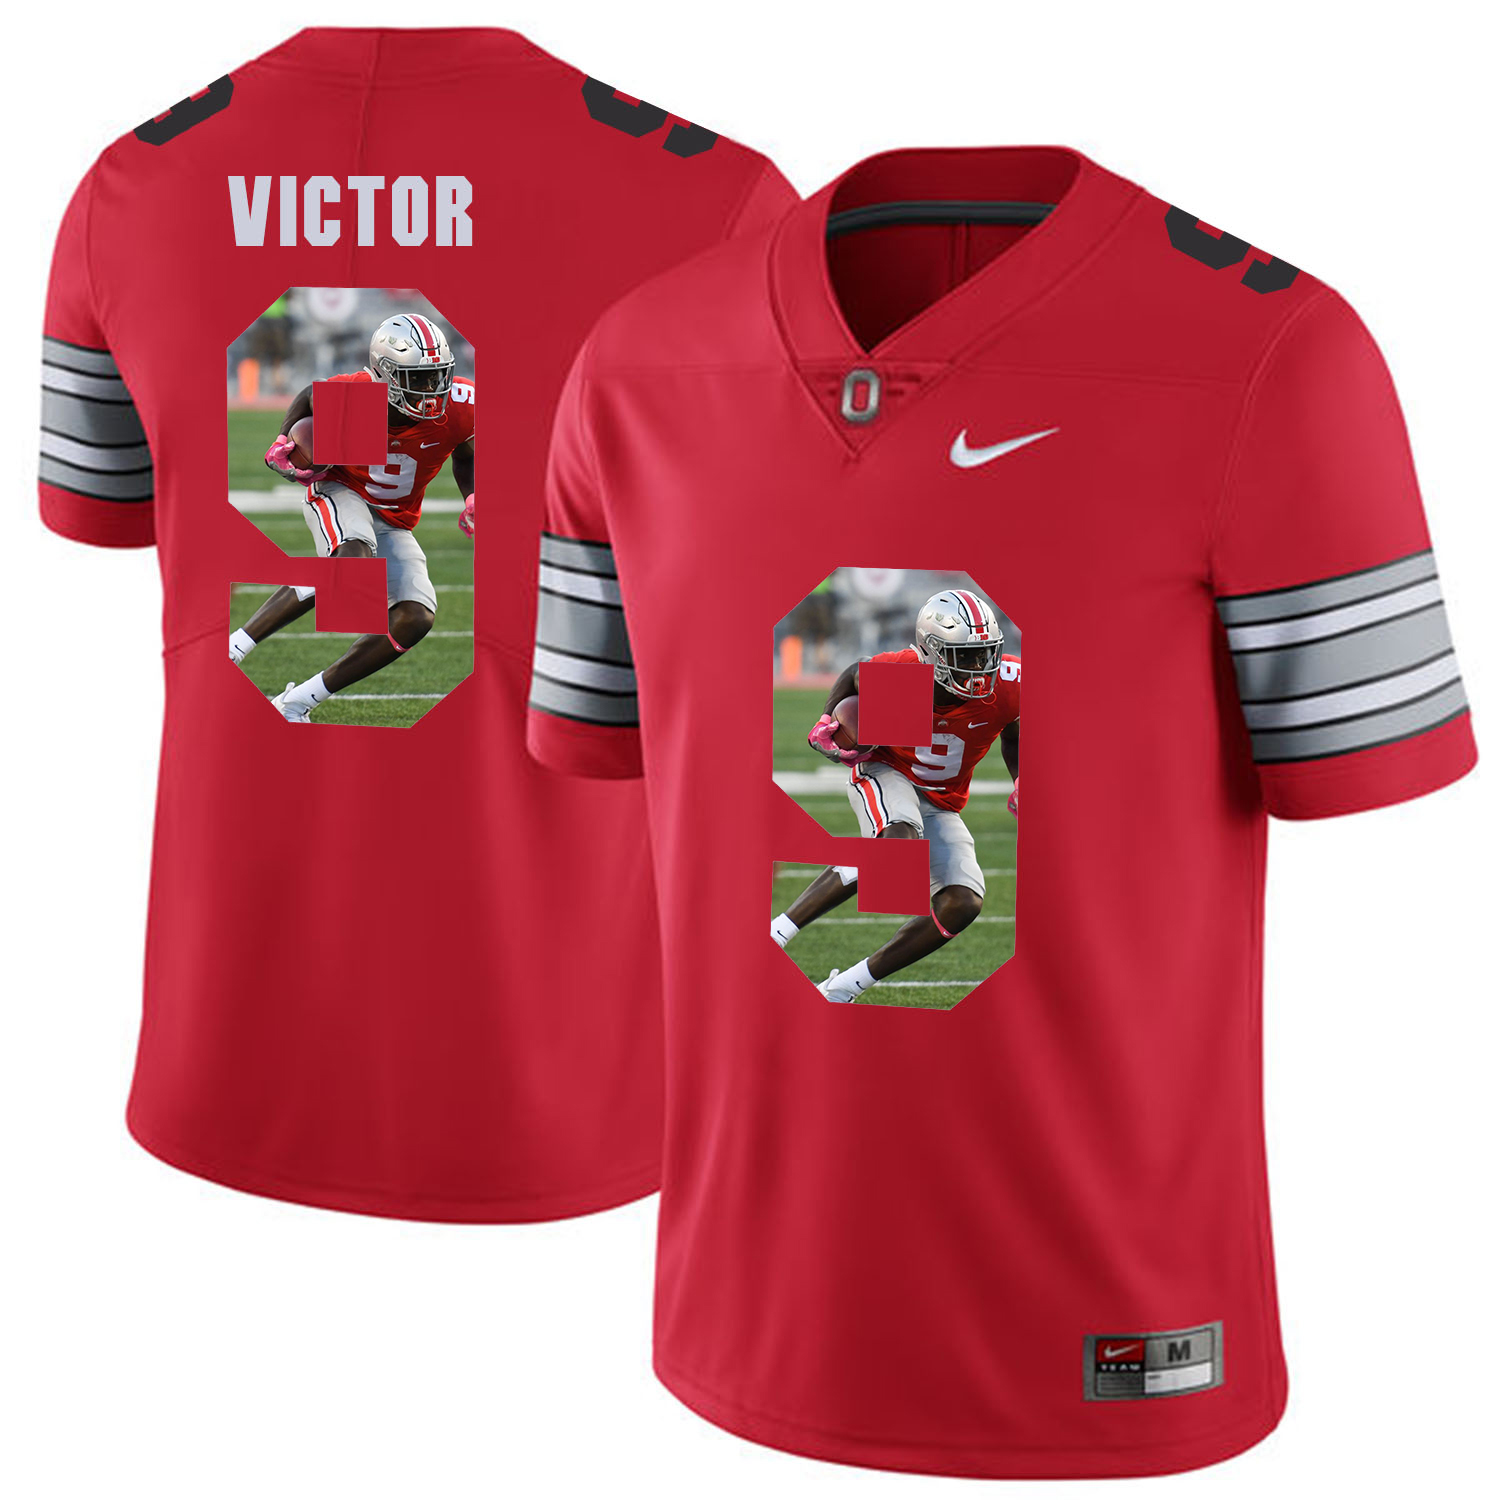 Men Ohio State 9 Victor Red Fashion Edition Customized NCAA Jerseys